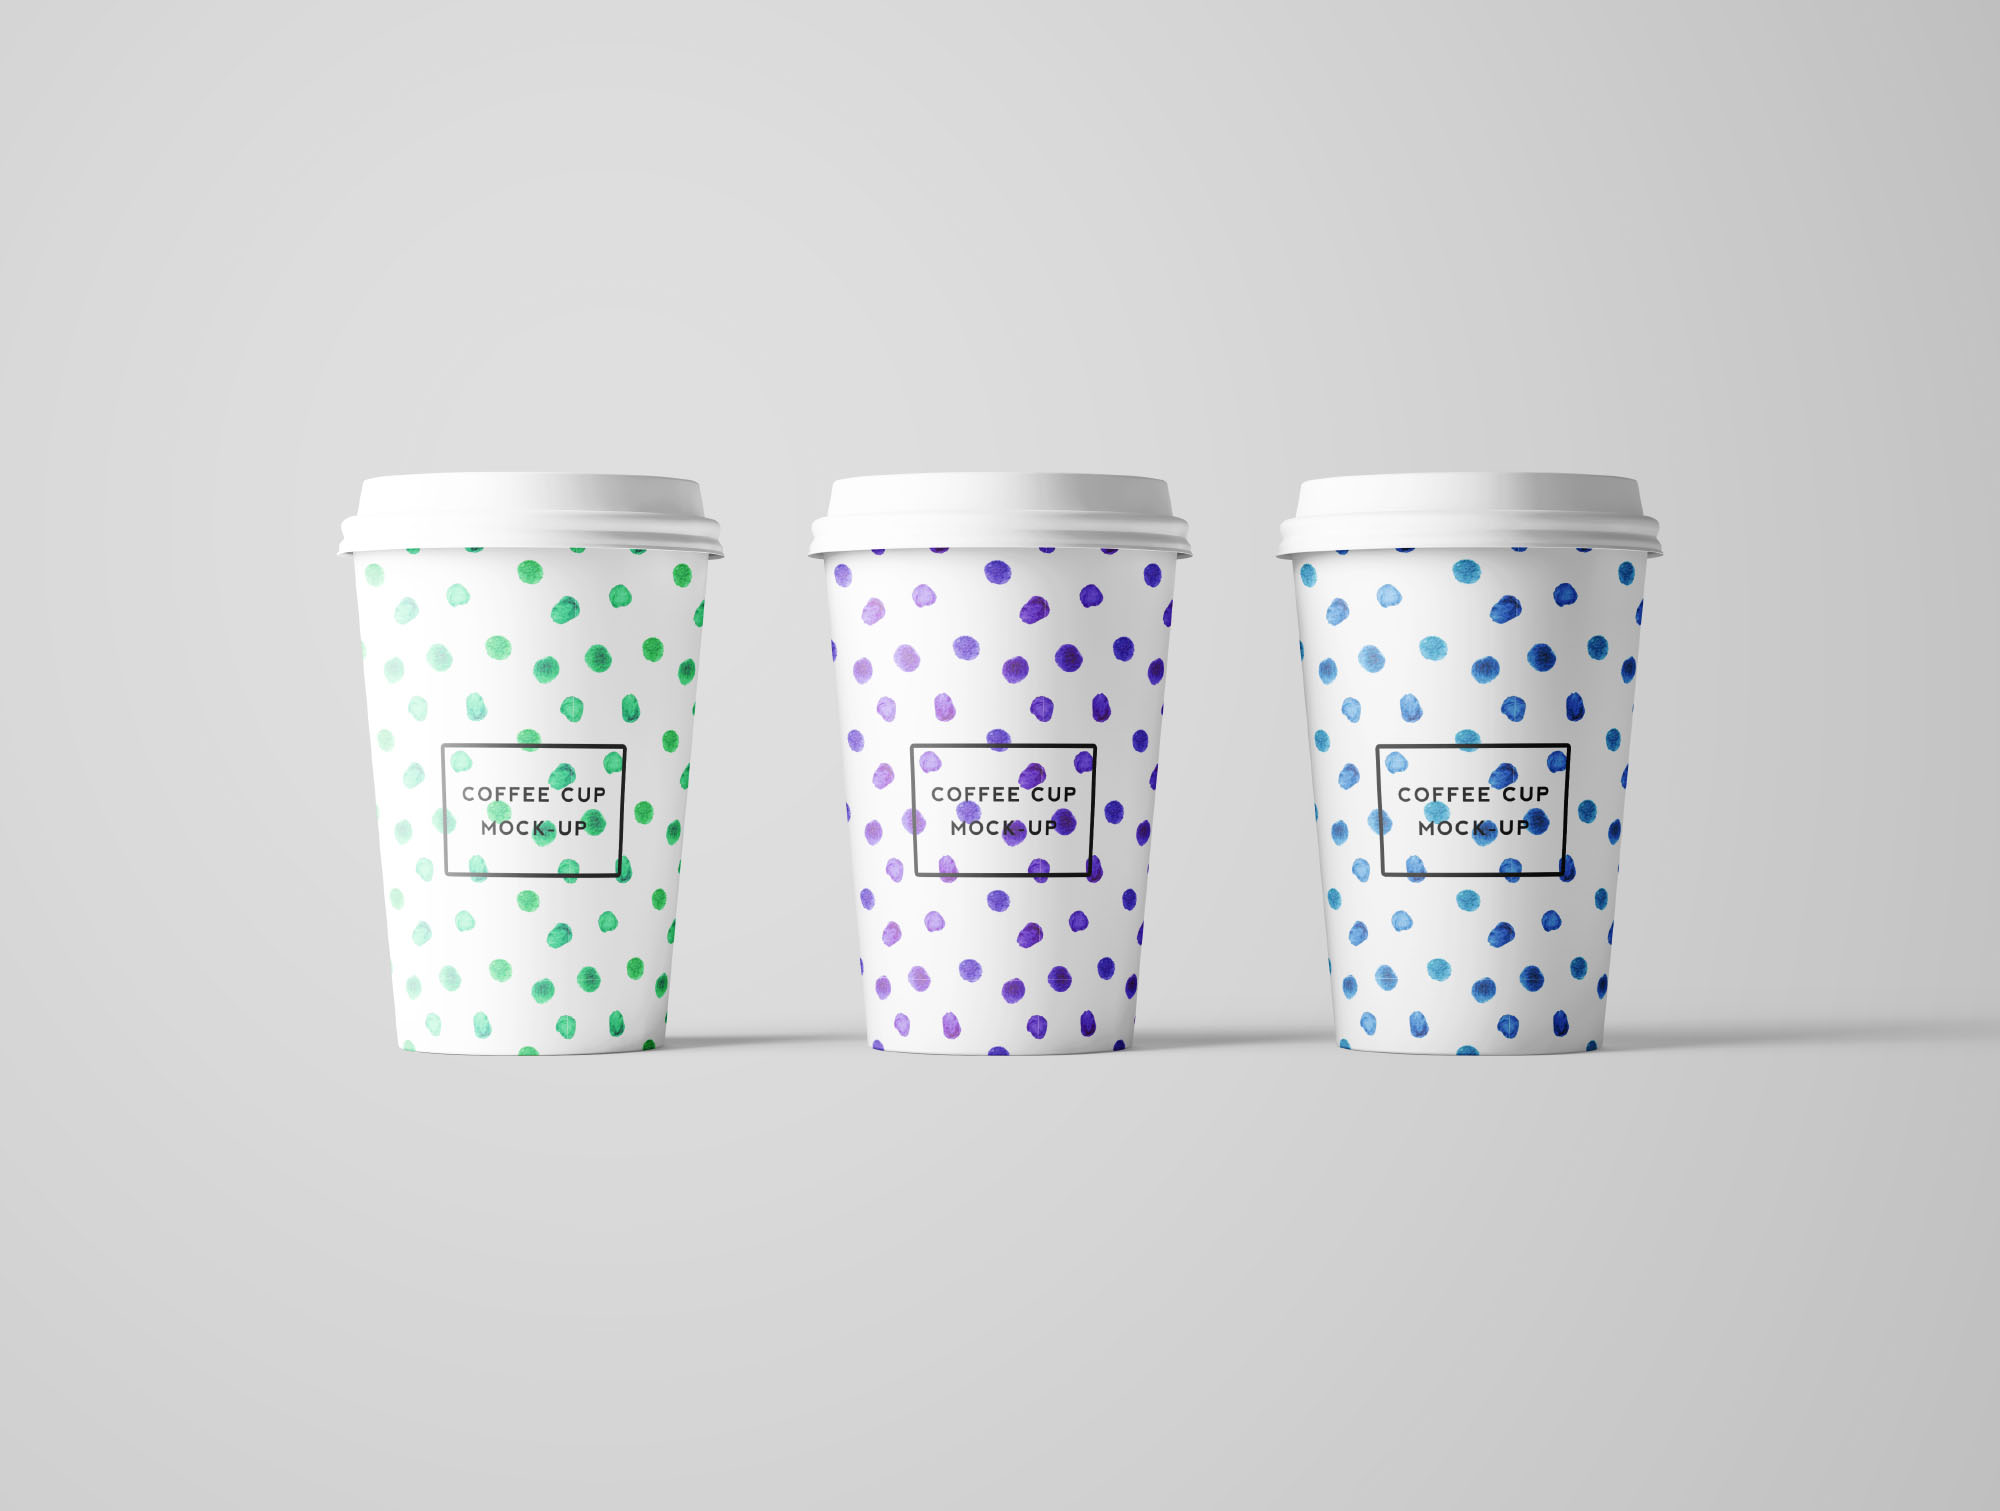 3 Coffee Cup Mockups - Front